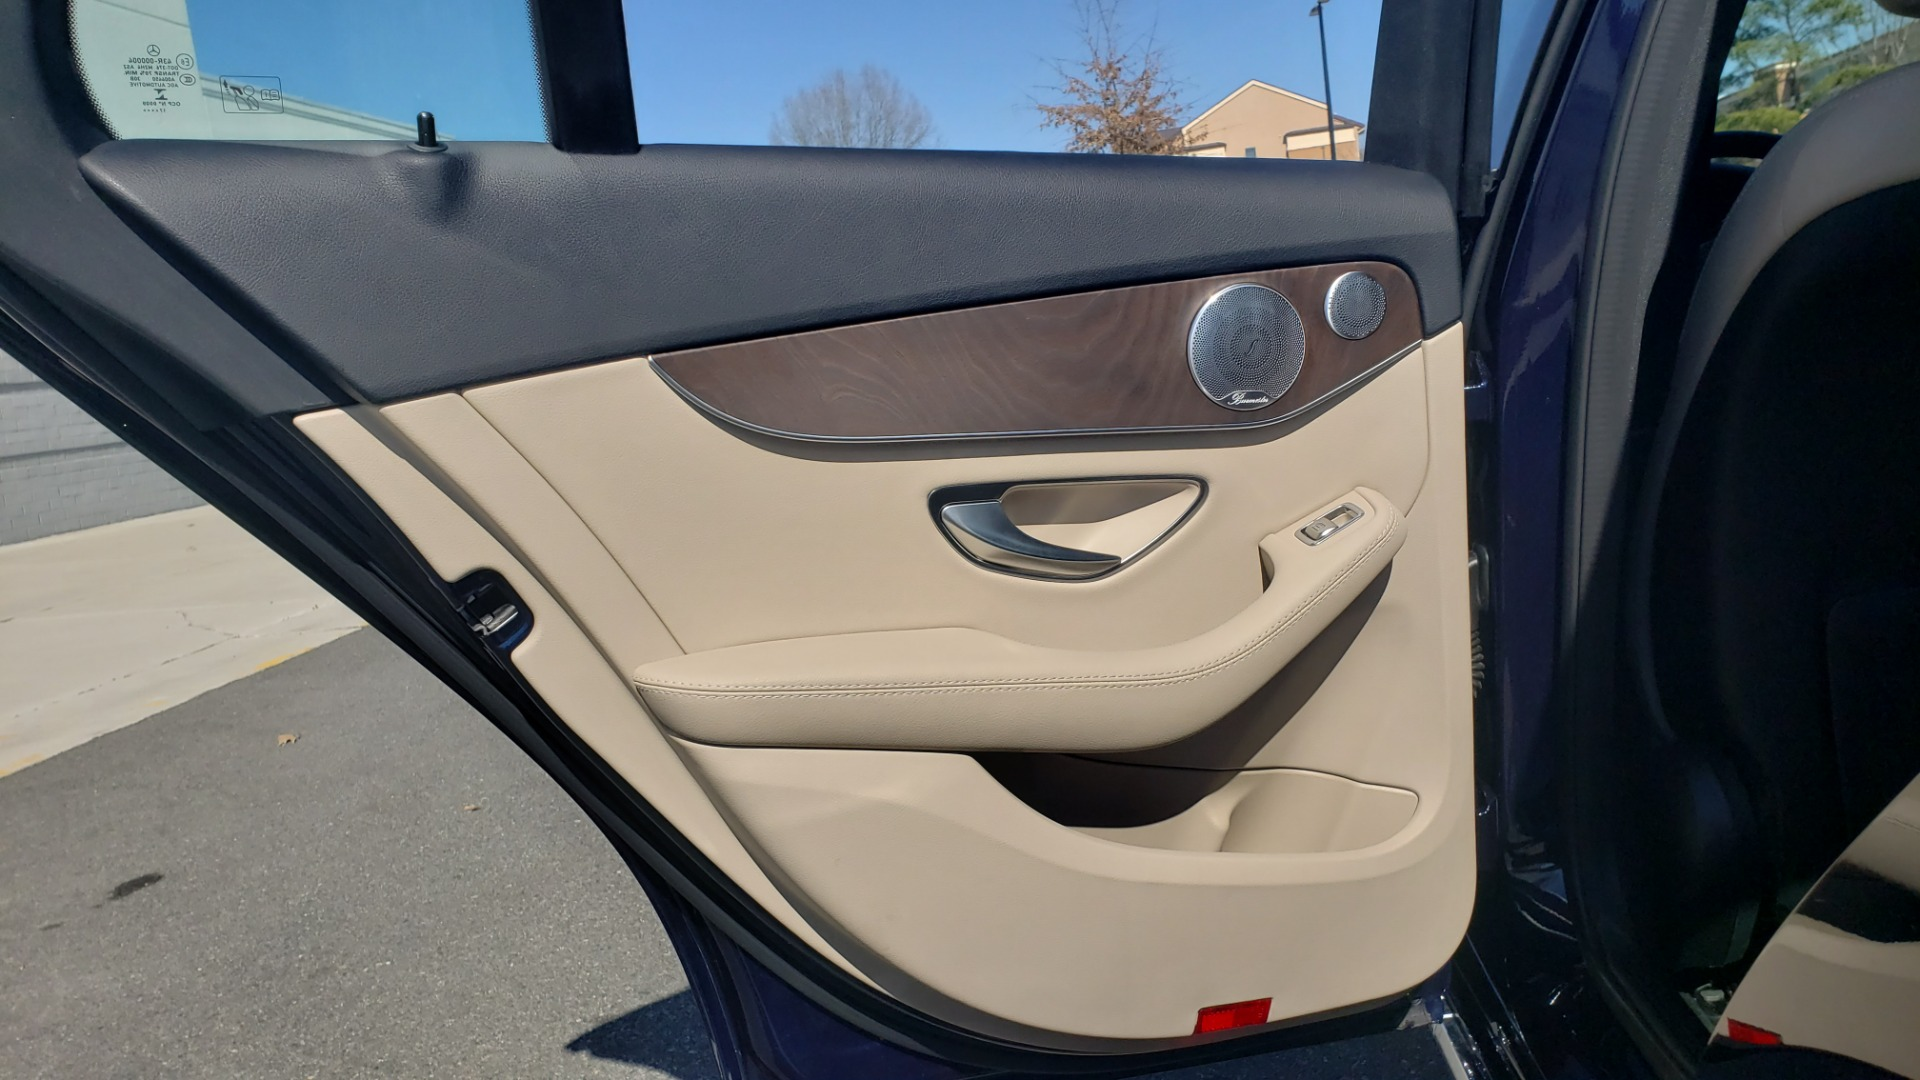 Used 2018 Mercedes-Benz C-CLASS C 300 PREMIUM / SUNROOF / BURMESTER / BSM / REARVIEW for sale $23,995 at Formula Imports in Charlotte NC 28227 51